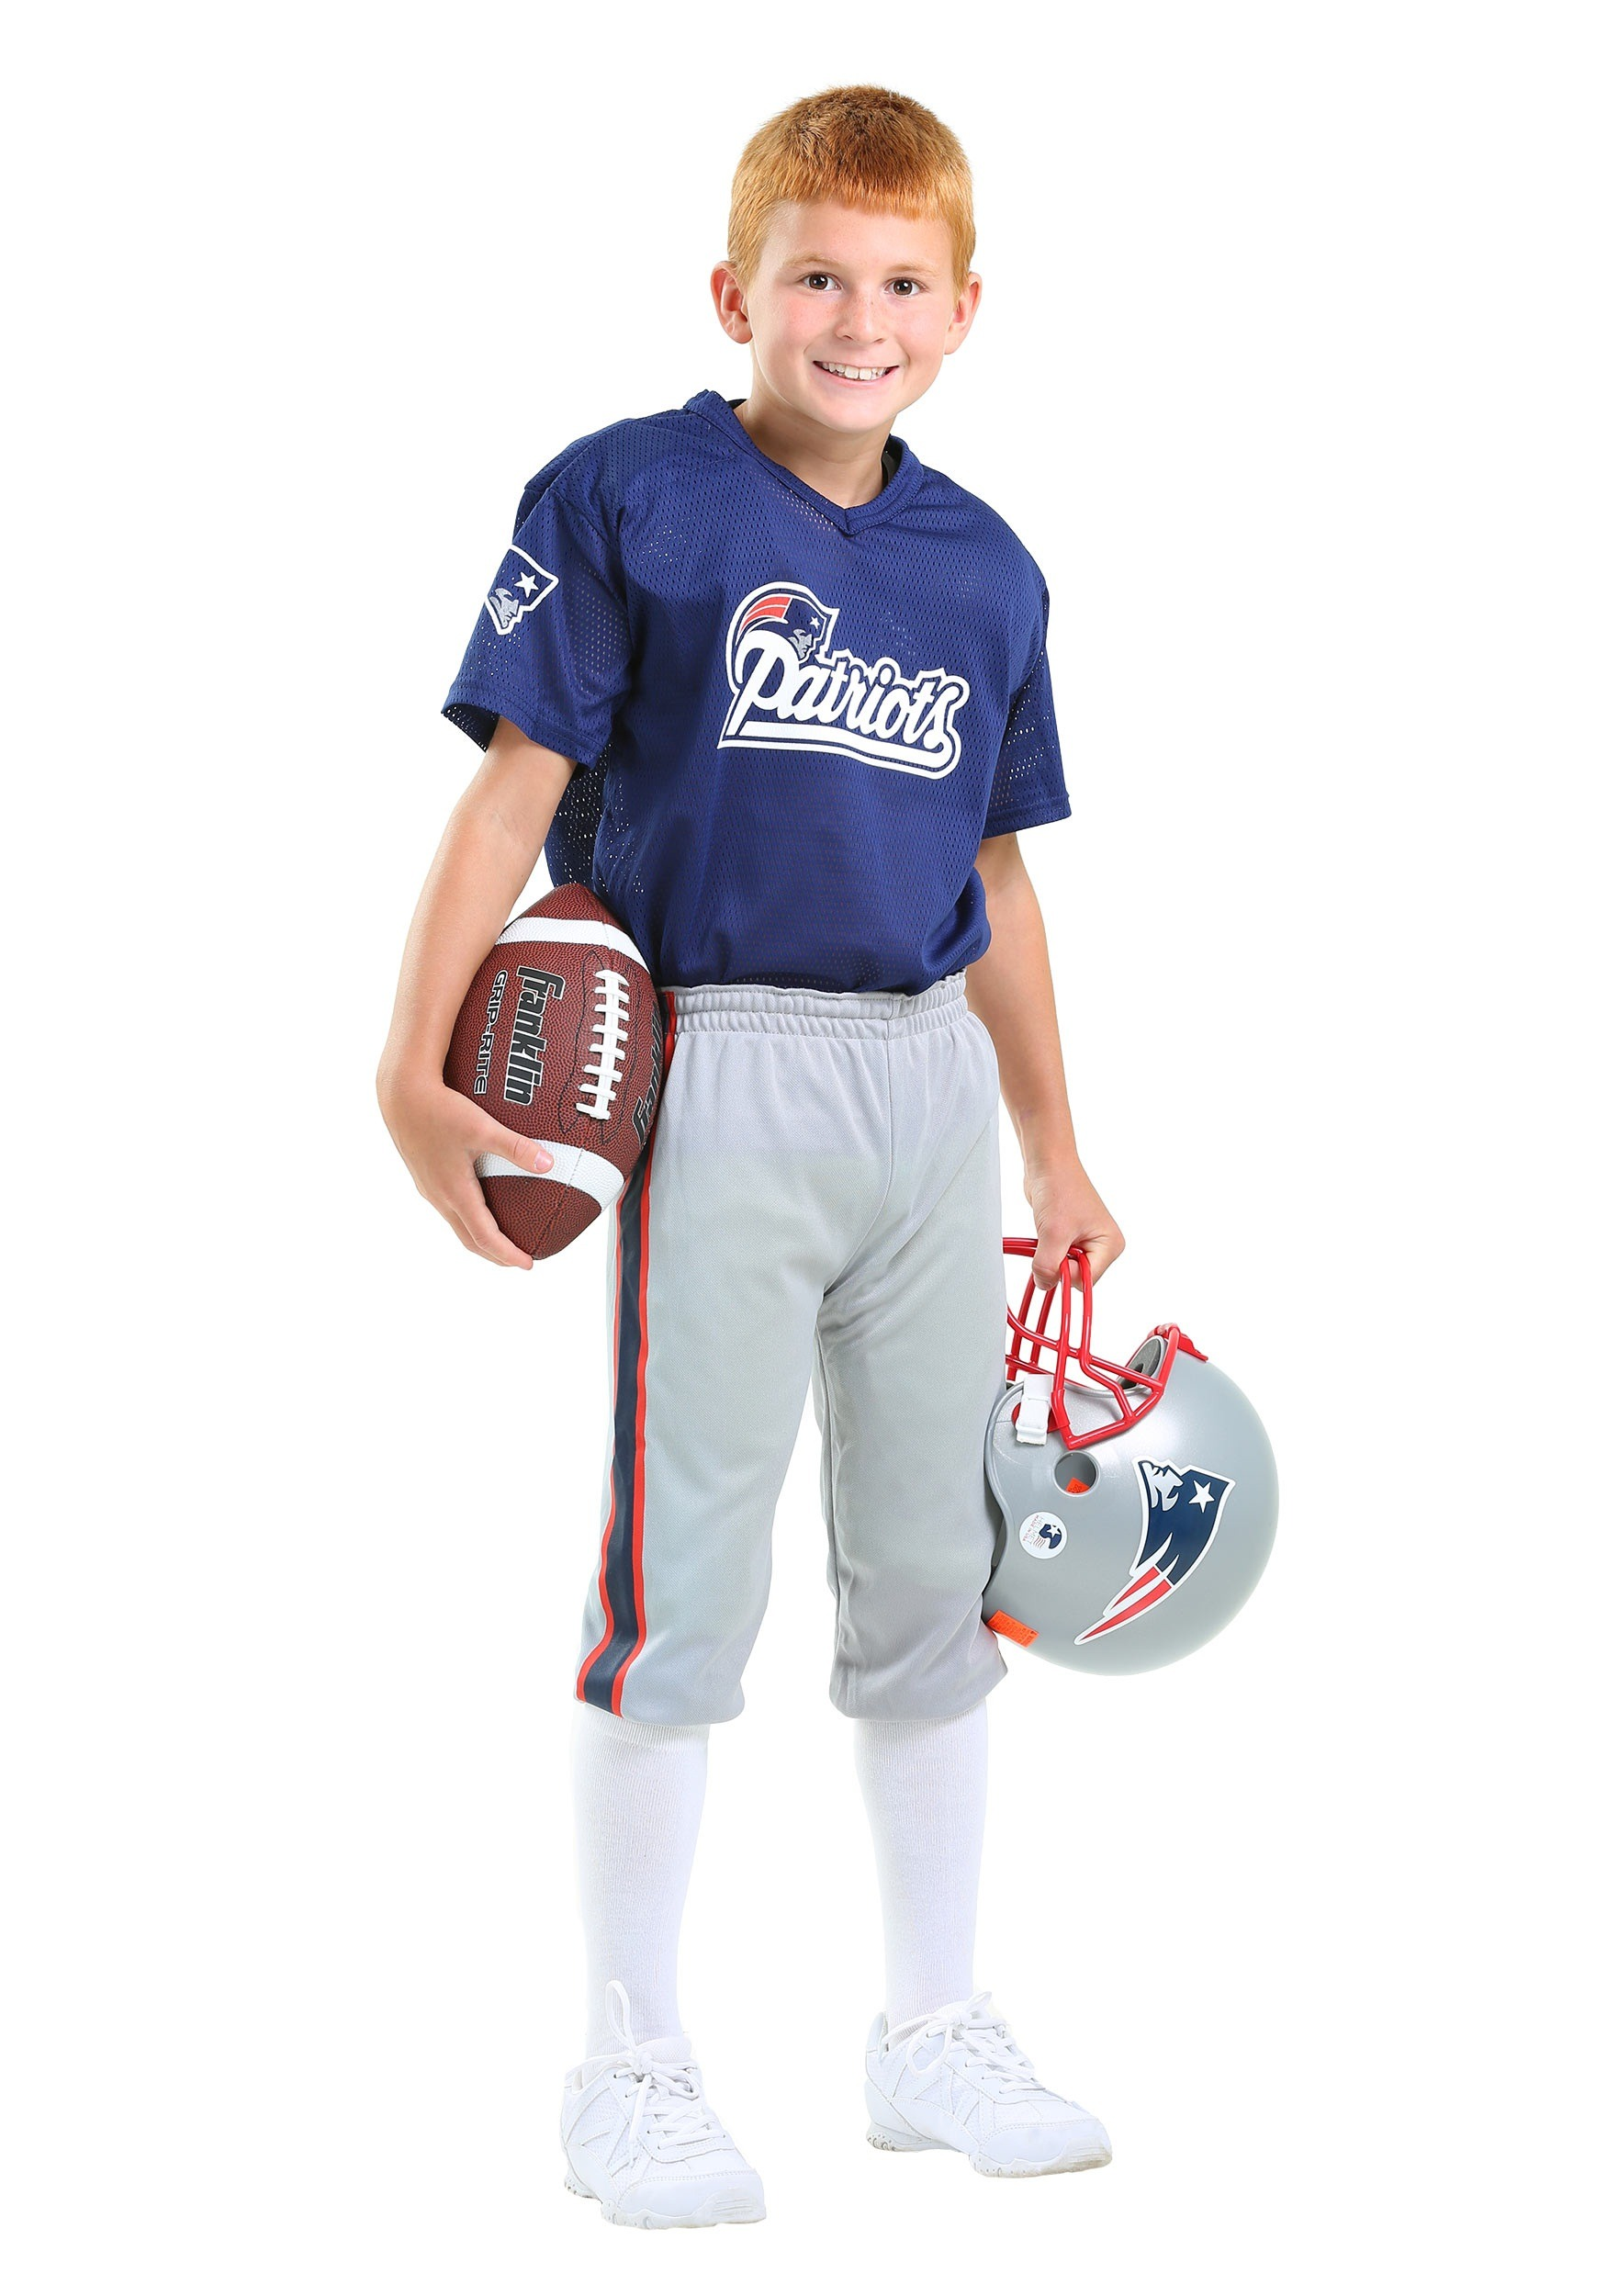 6247381d494 Football Player Costumes   Uniforms for Kids and Adults